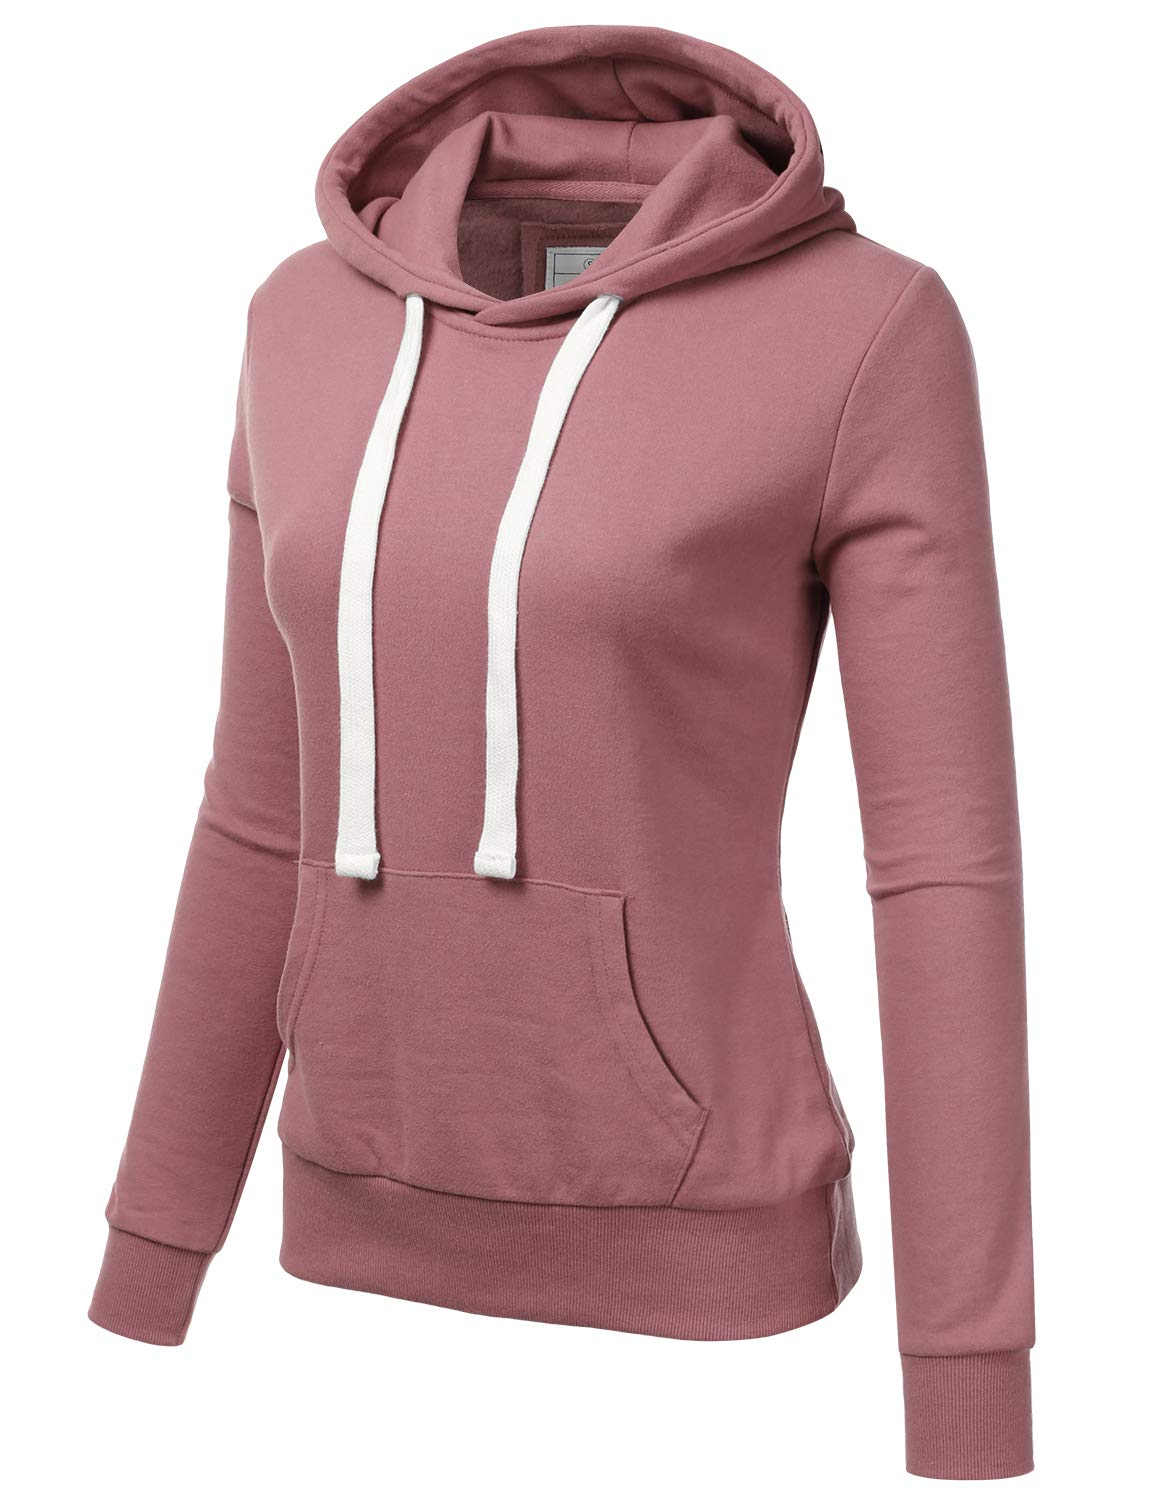 Doublju Basic Lightweight Pullover Hoodie Sweatshirt for Women